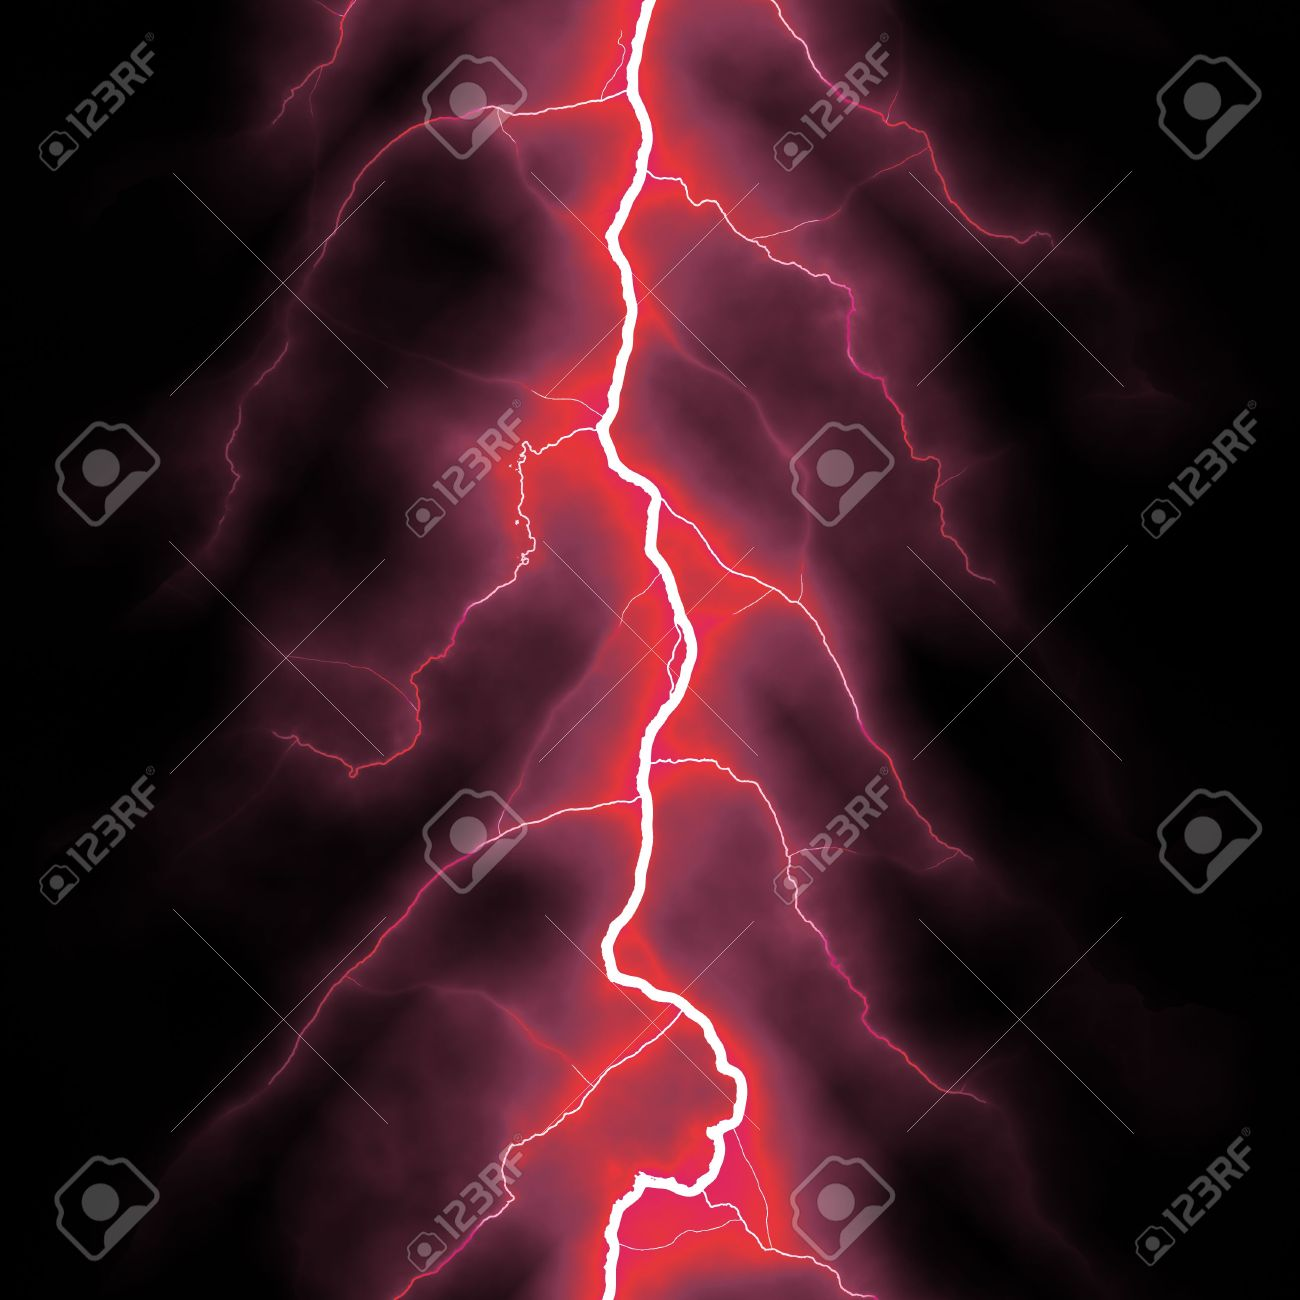 Red Lightning Bolt Over Black Stock Photo Picture And Royalty Free Image Image 4344619